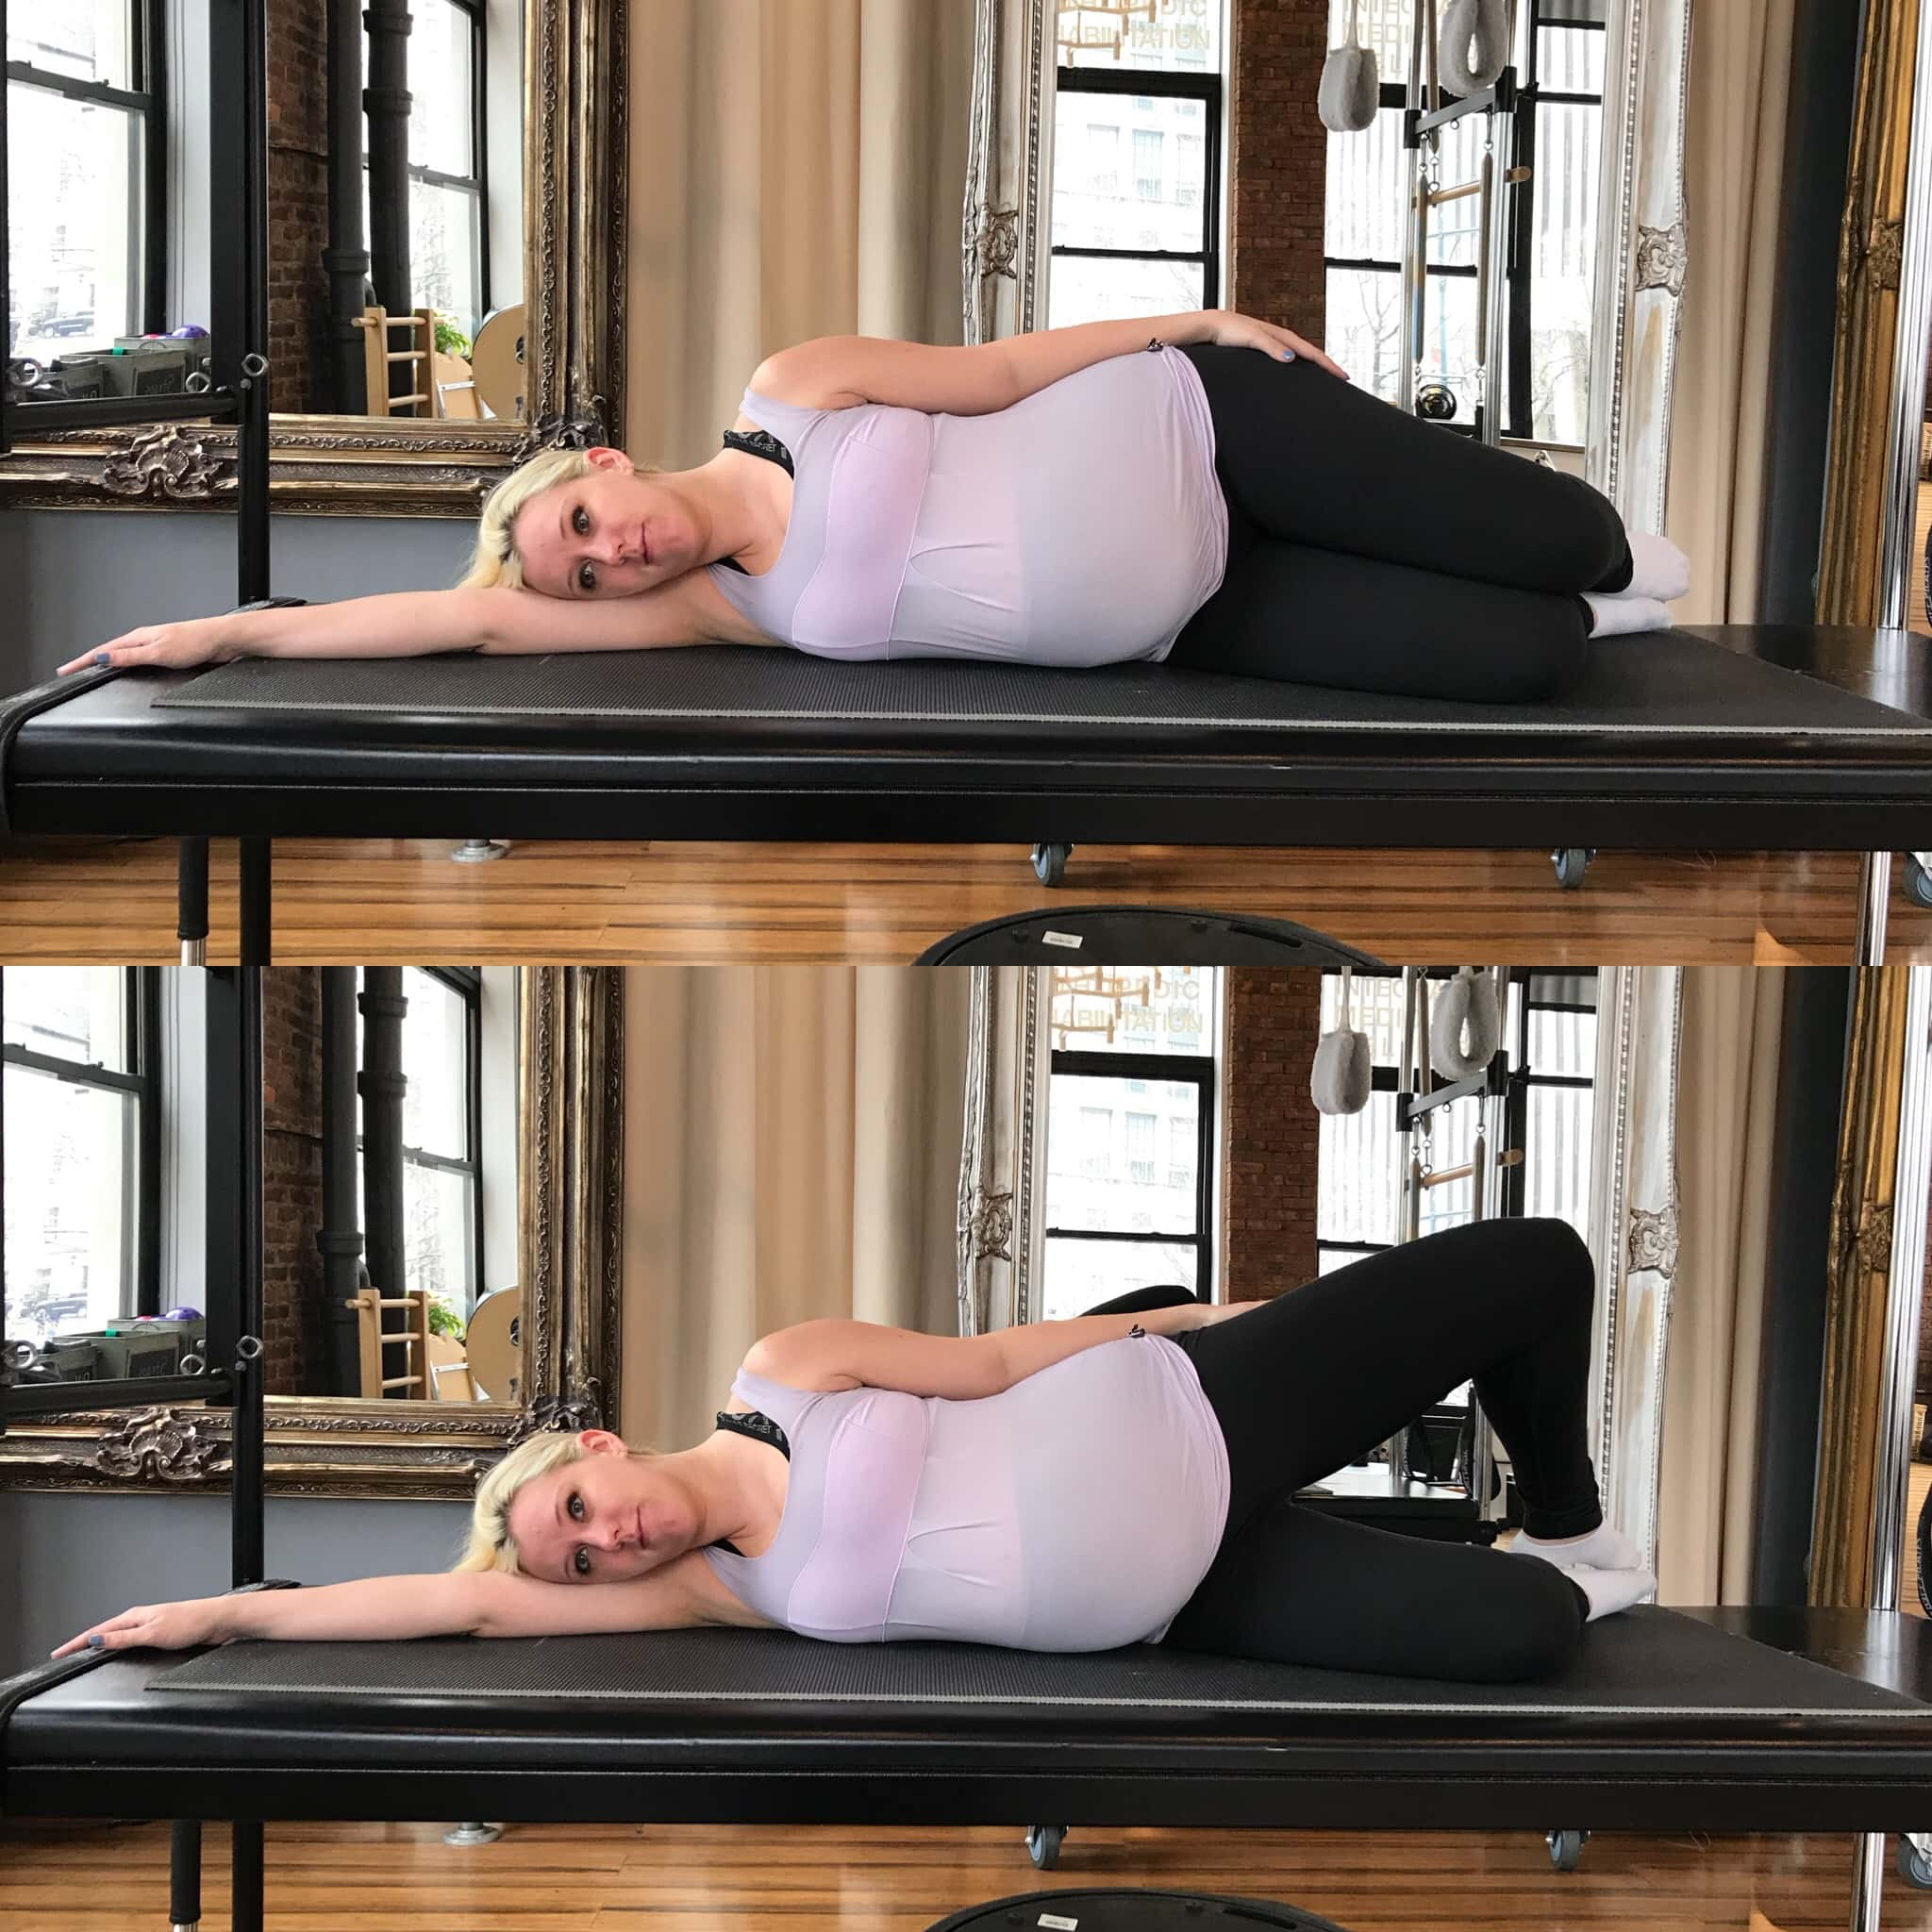 Prenatal Pilates Exercises - Practicing Prenatal Pilates Clamshell Exercise for Strenghtening and Toning | https://physiologicnyc.com/pilates-movement/